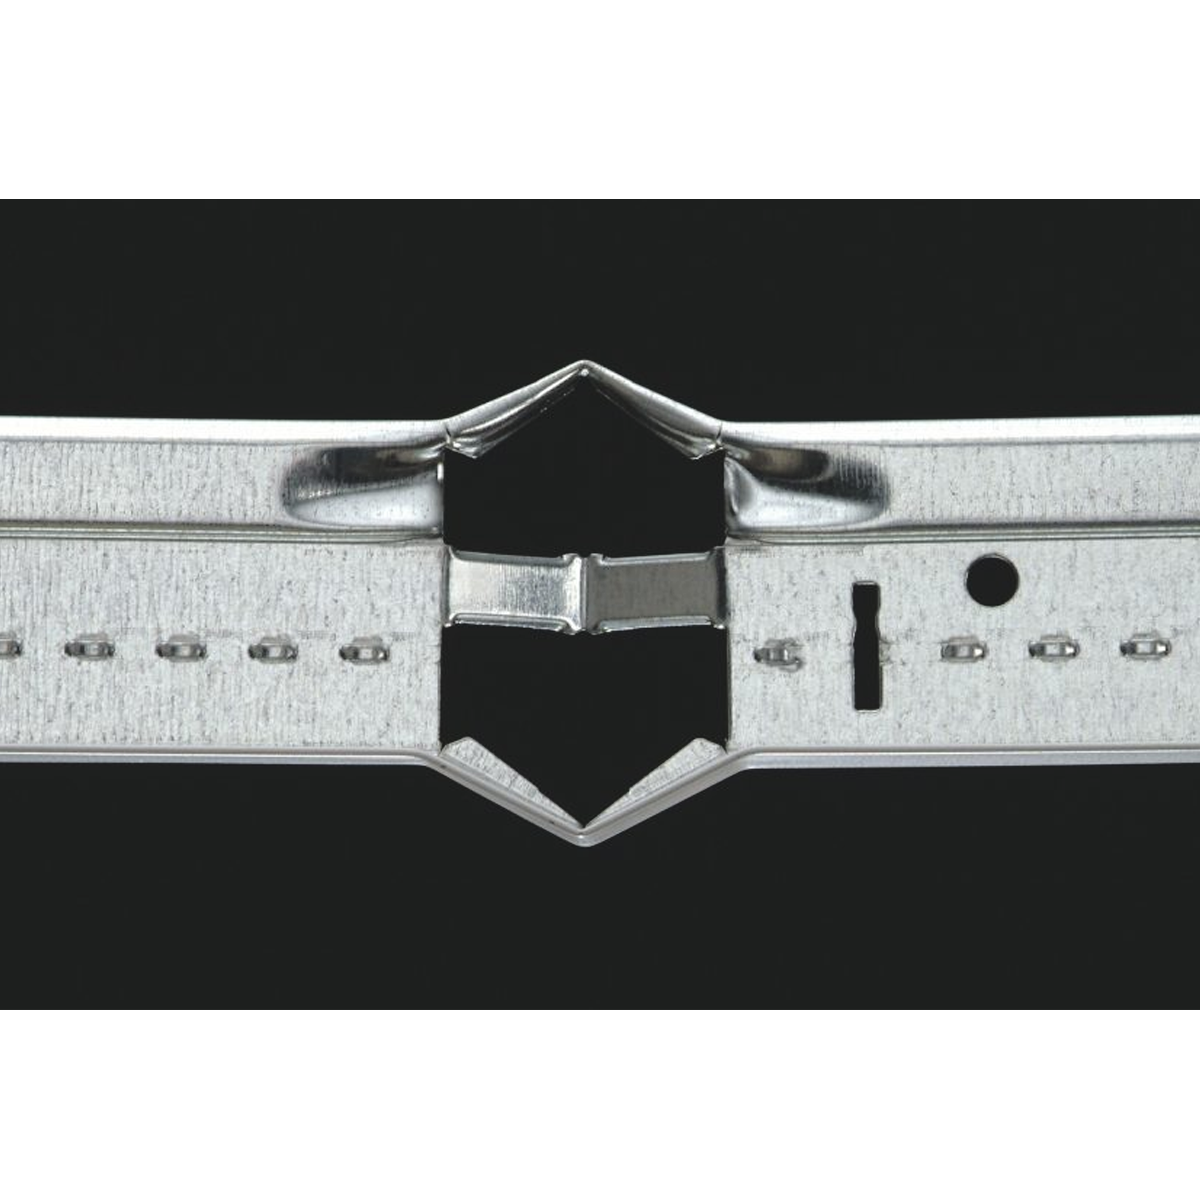 """PRELUDE® XL® FIRE GUARD™ 15/16"""" GRID SYSTEM COMPONENTS"""